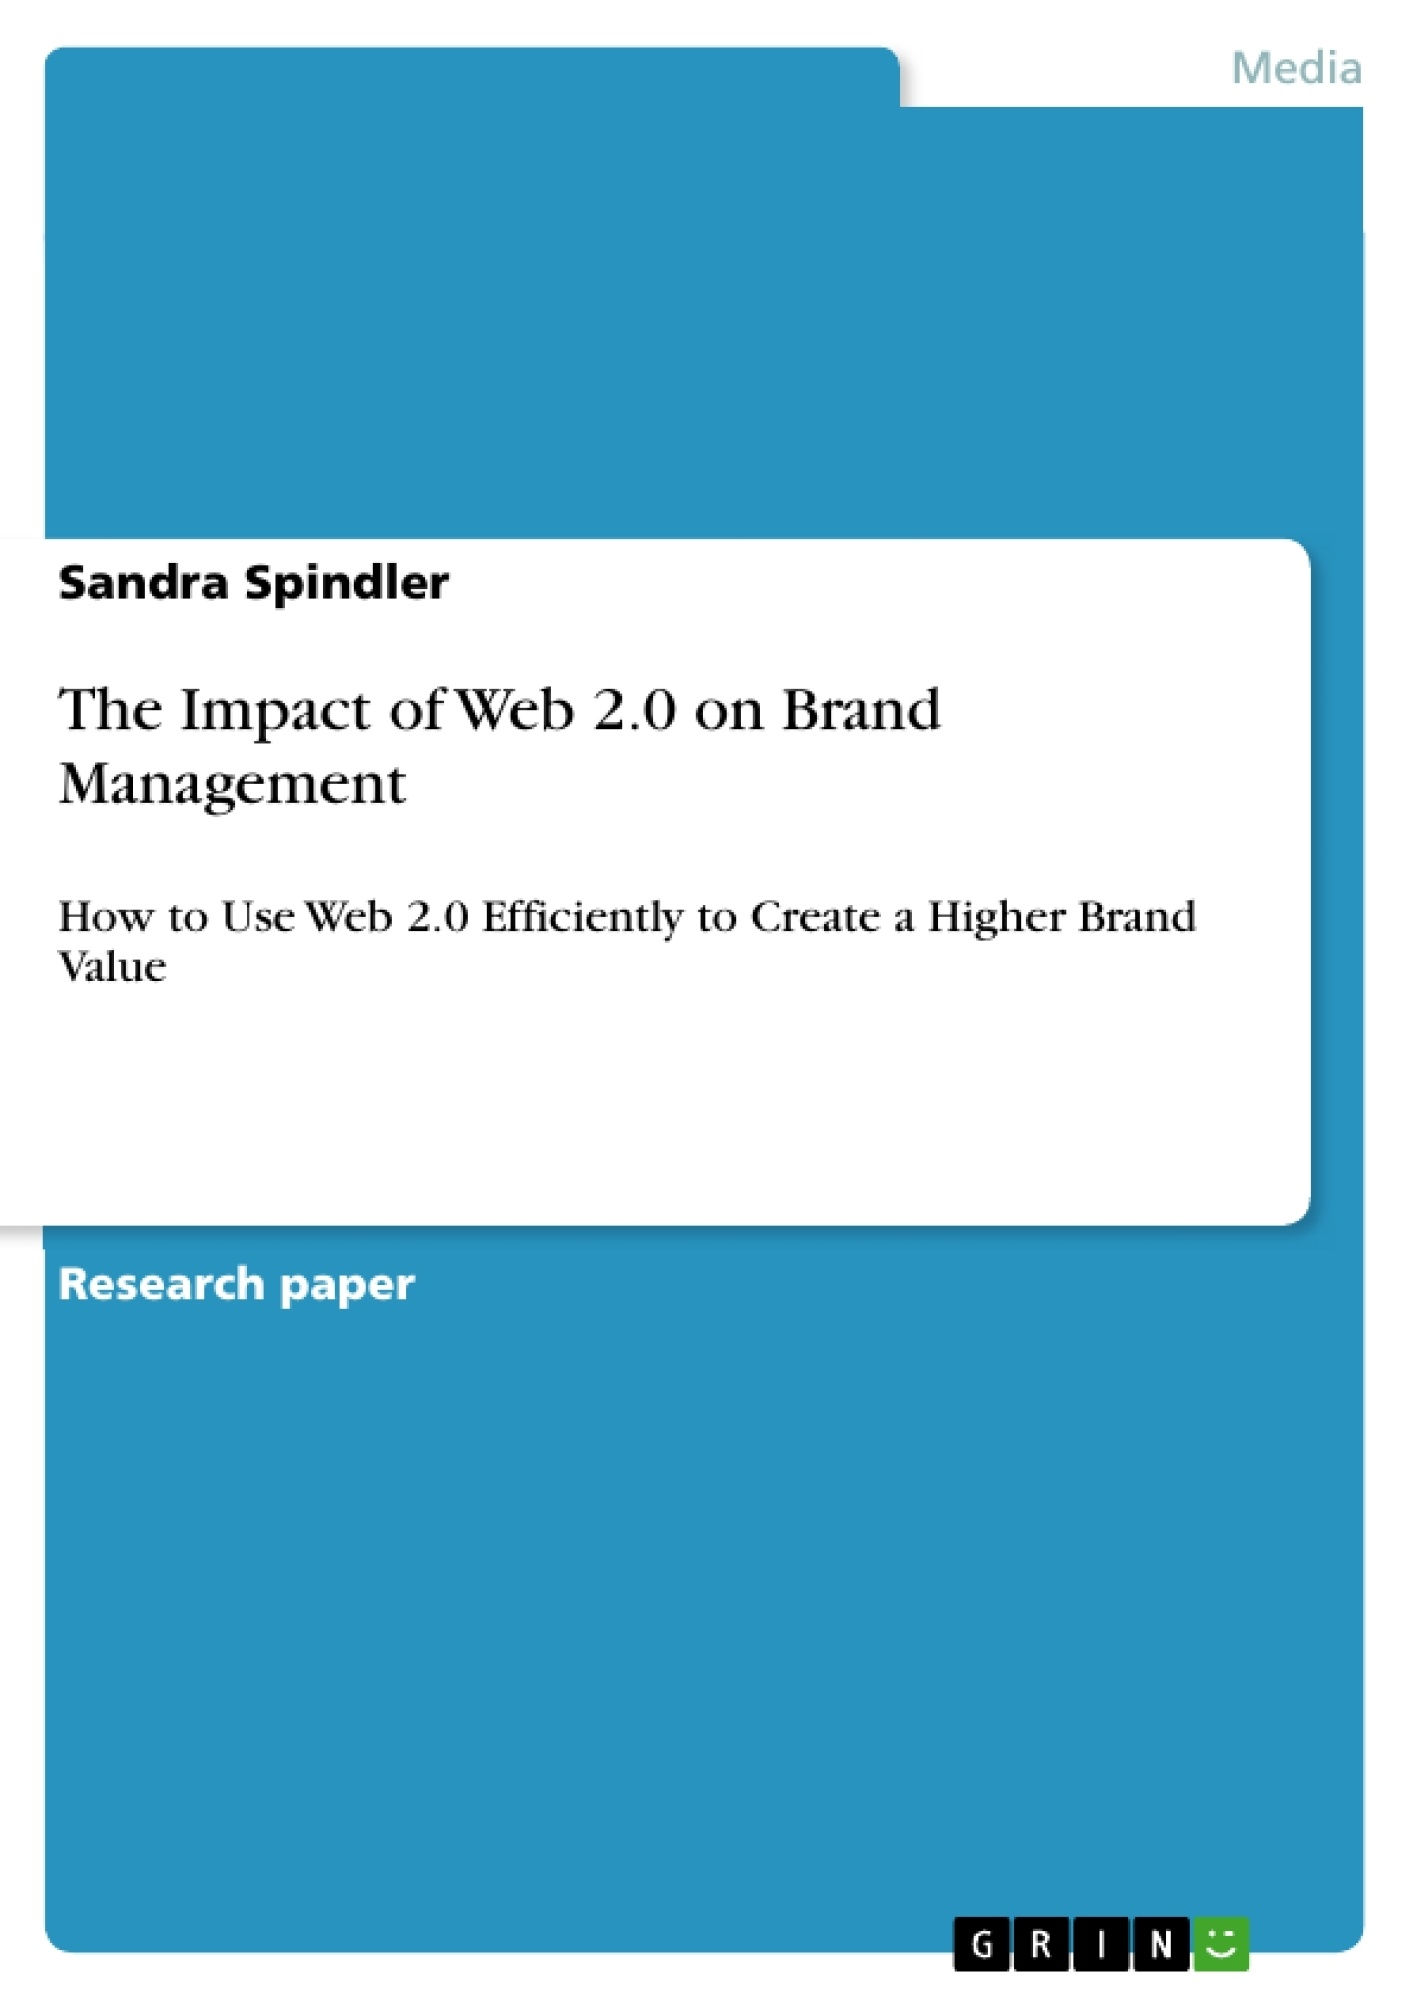 thesis on brand management